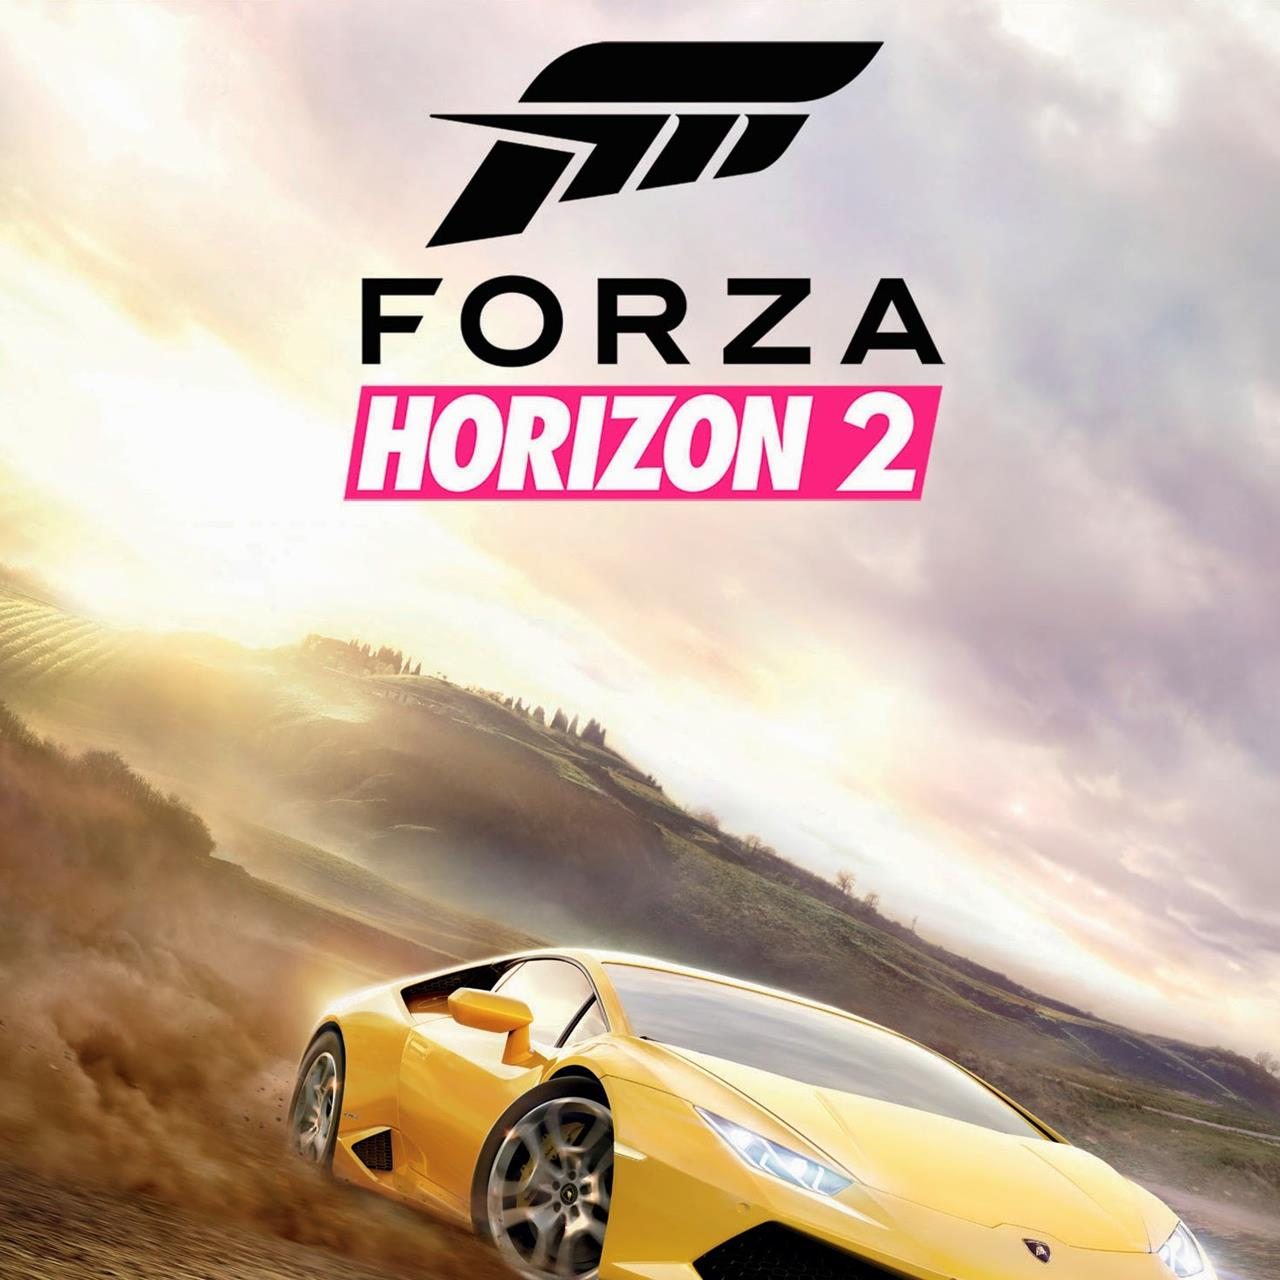 forza horizon 2 racing game wallpapers. Black Bedroom Furniture Sets. Home Design Ideas